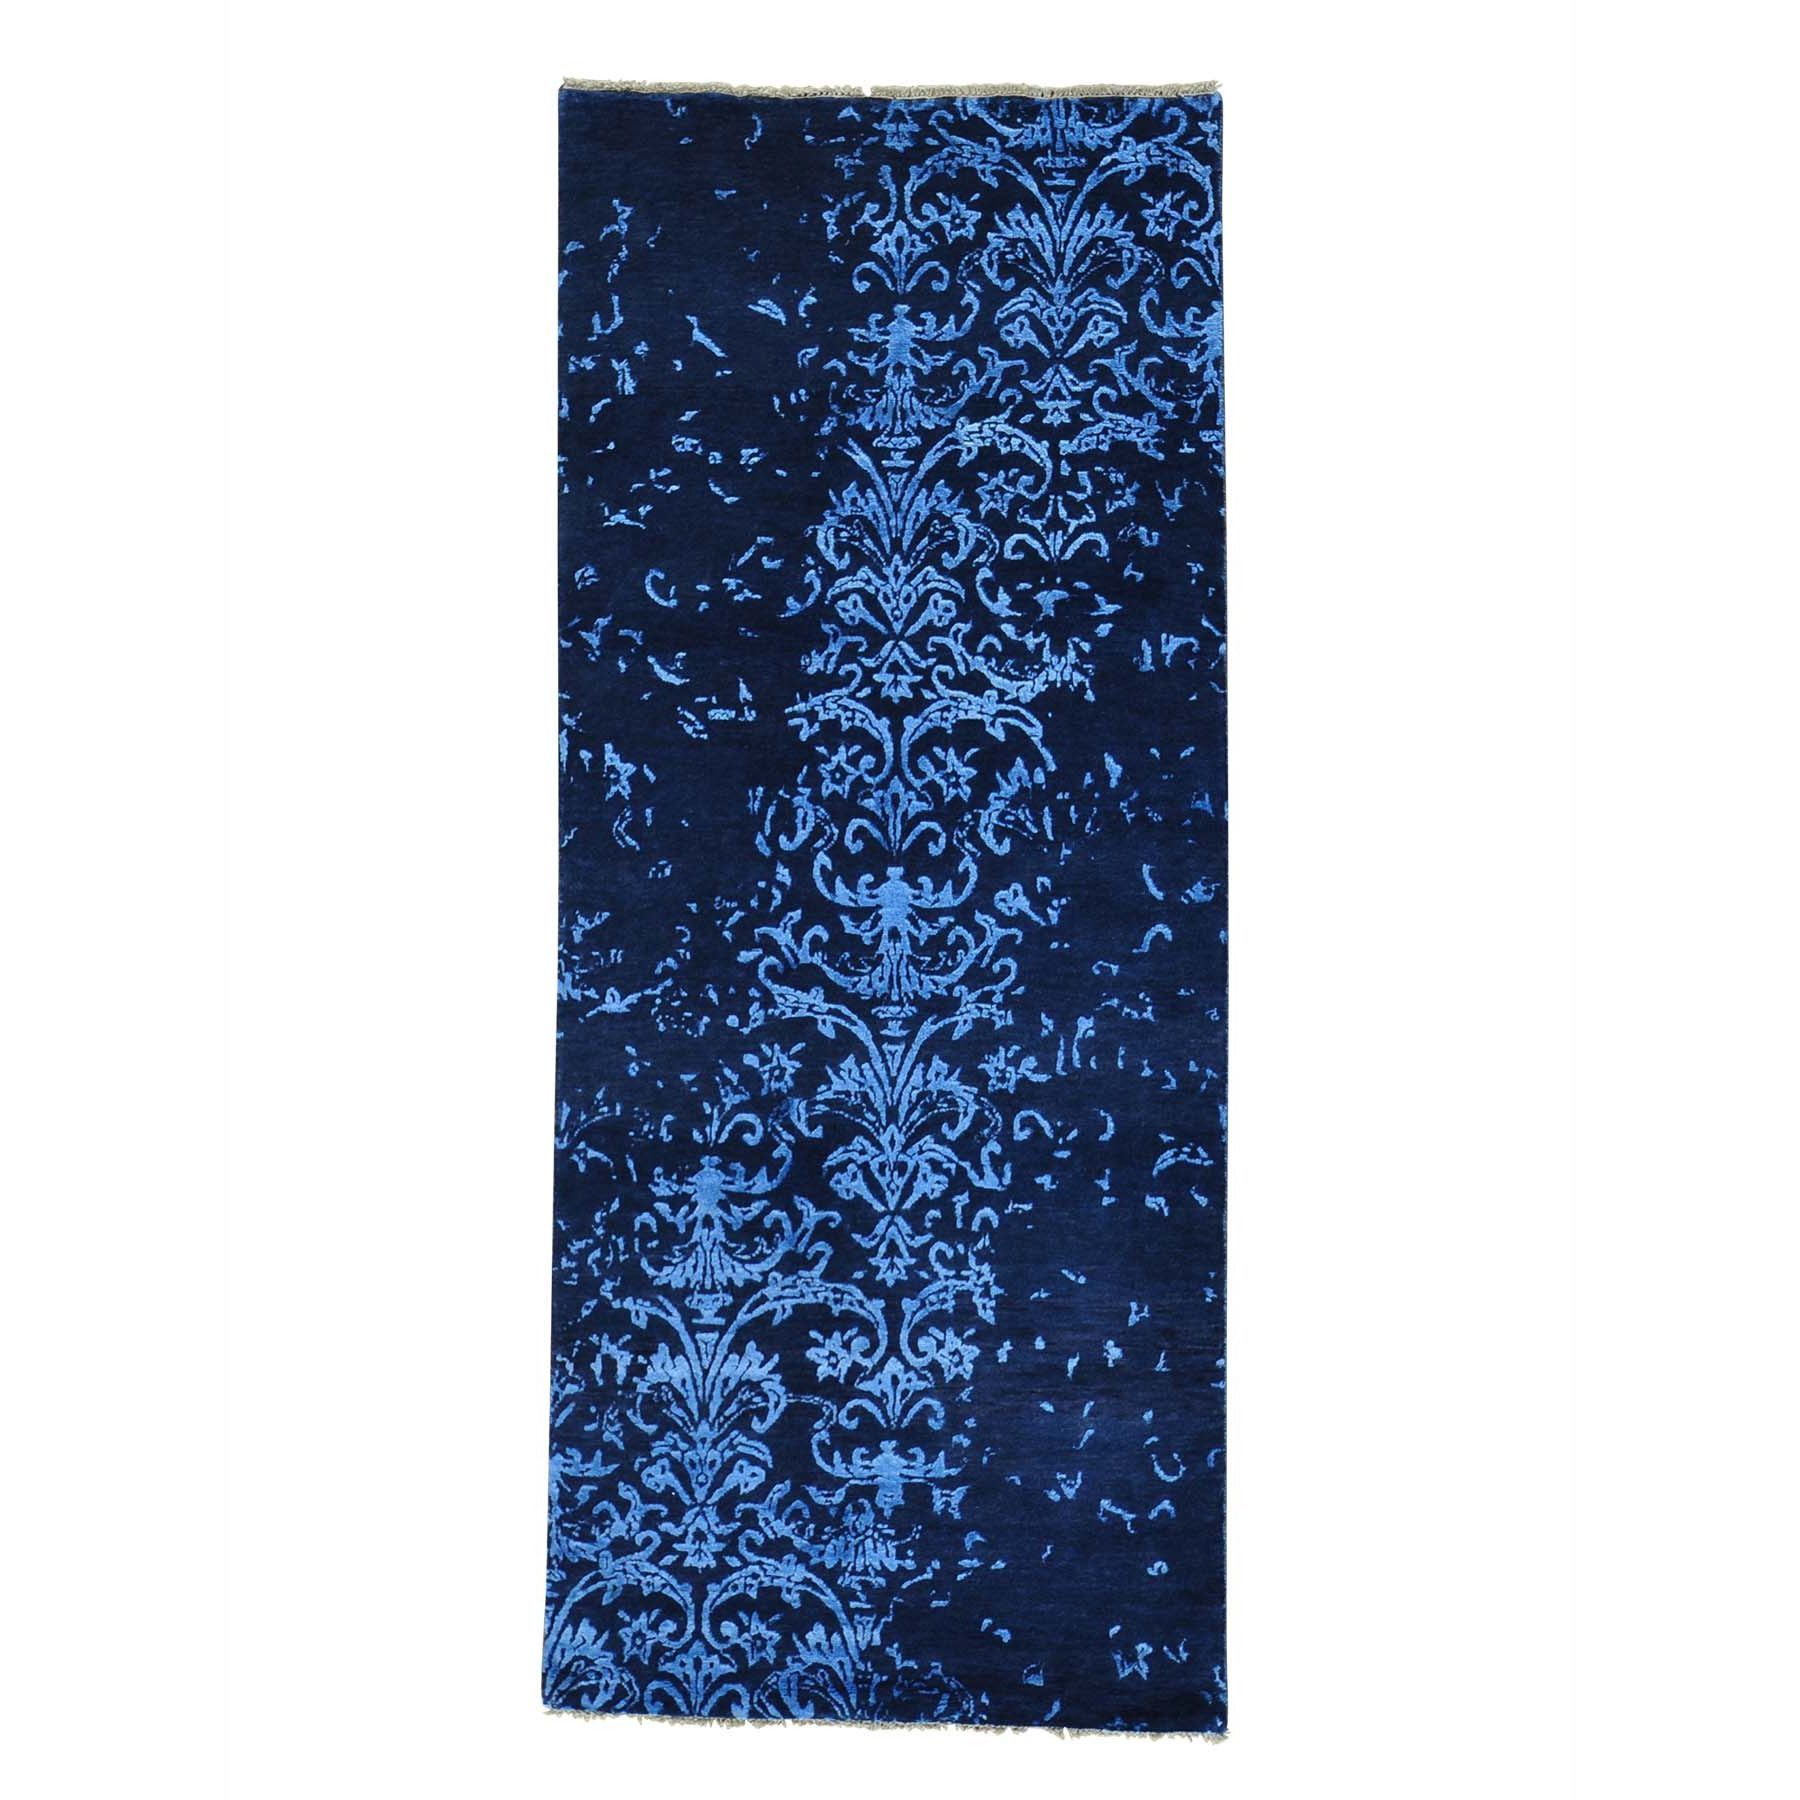 1800getarug Wool And Modern Damask Handmade Runner Rug